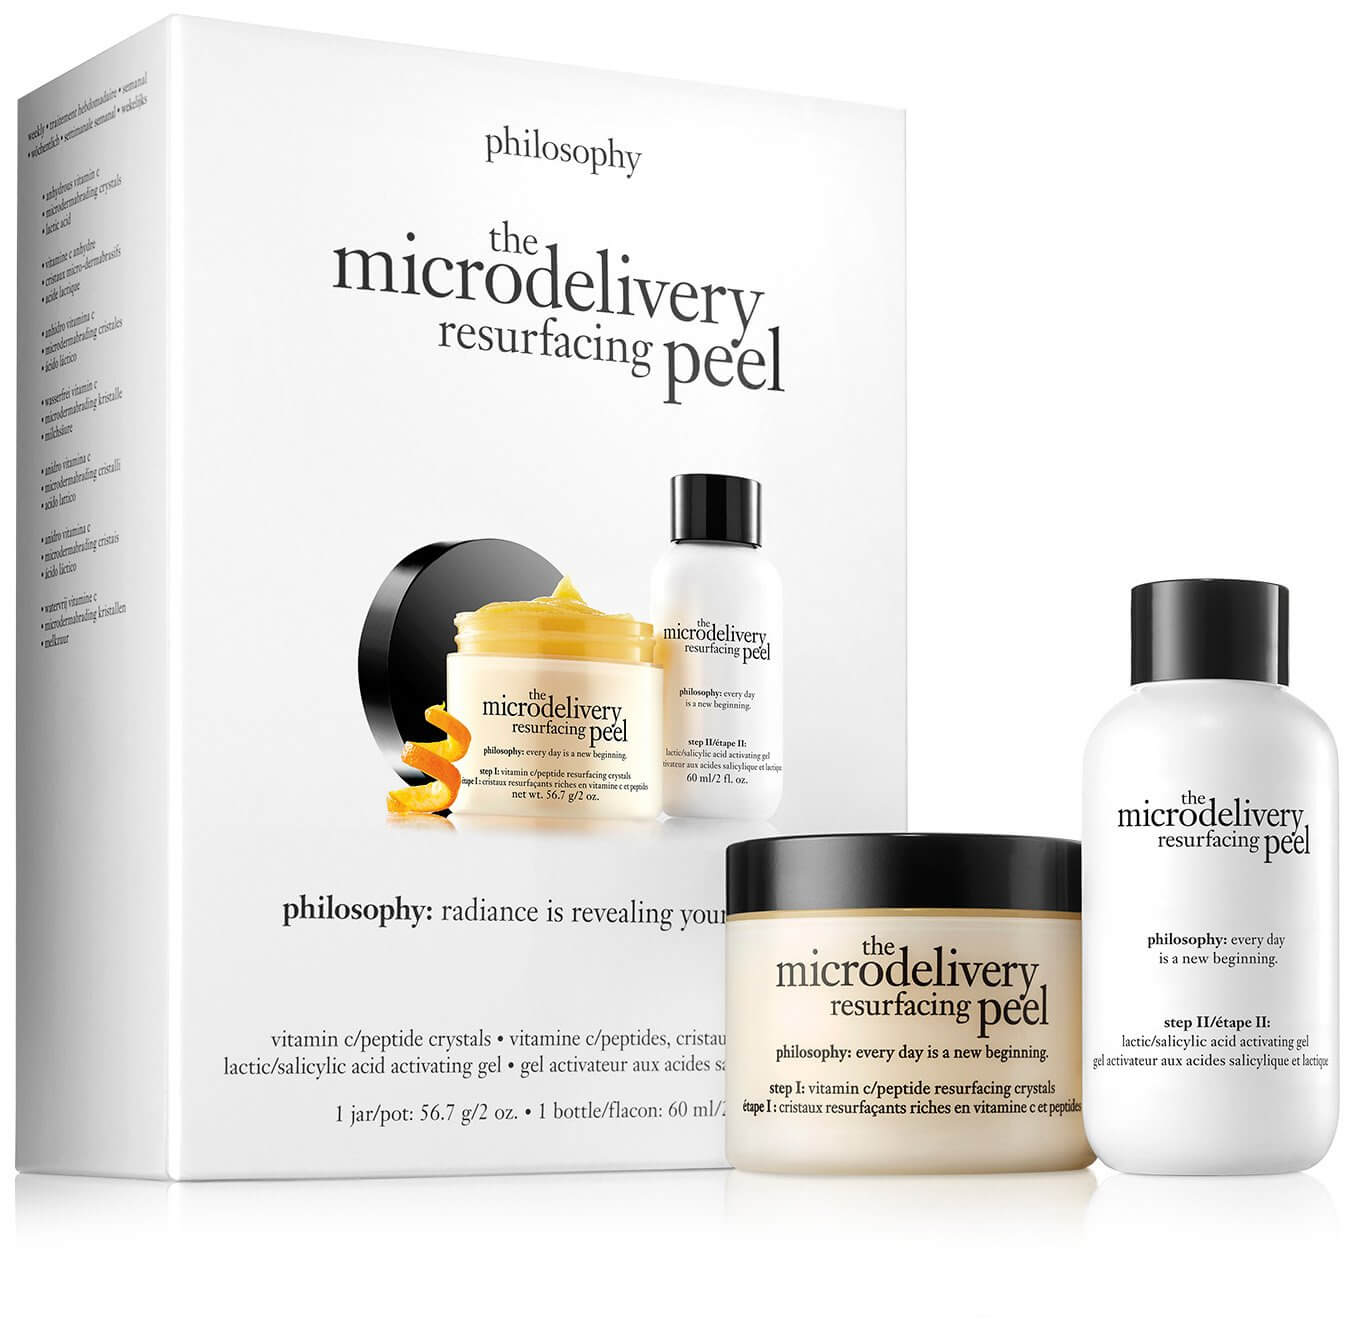 philosophy microdelivery resurfacing peel as a recommended product to achieve good skin